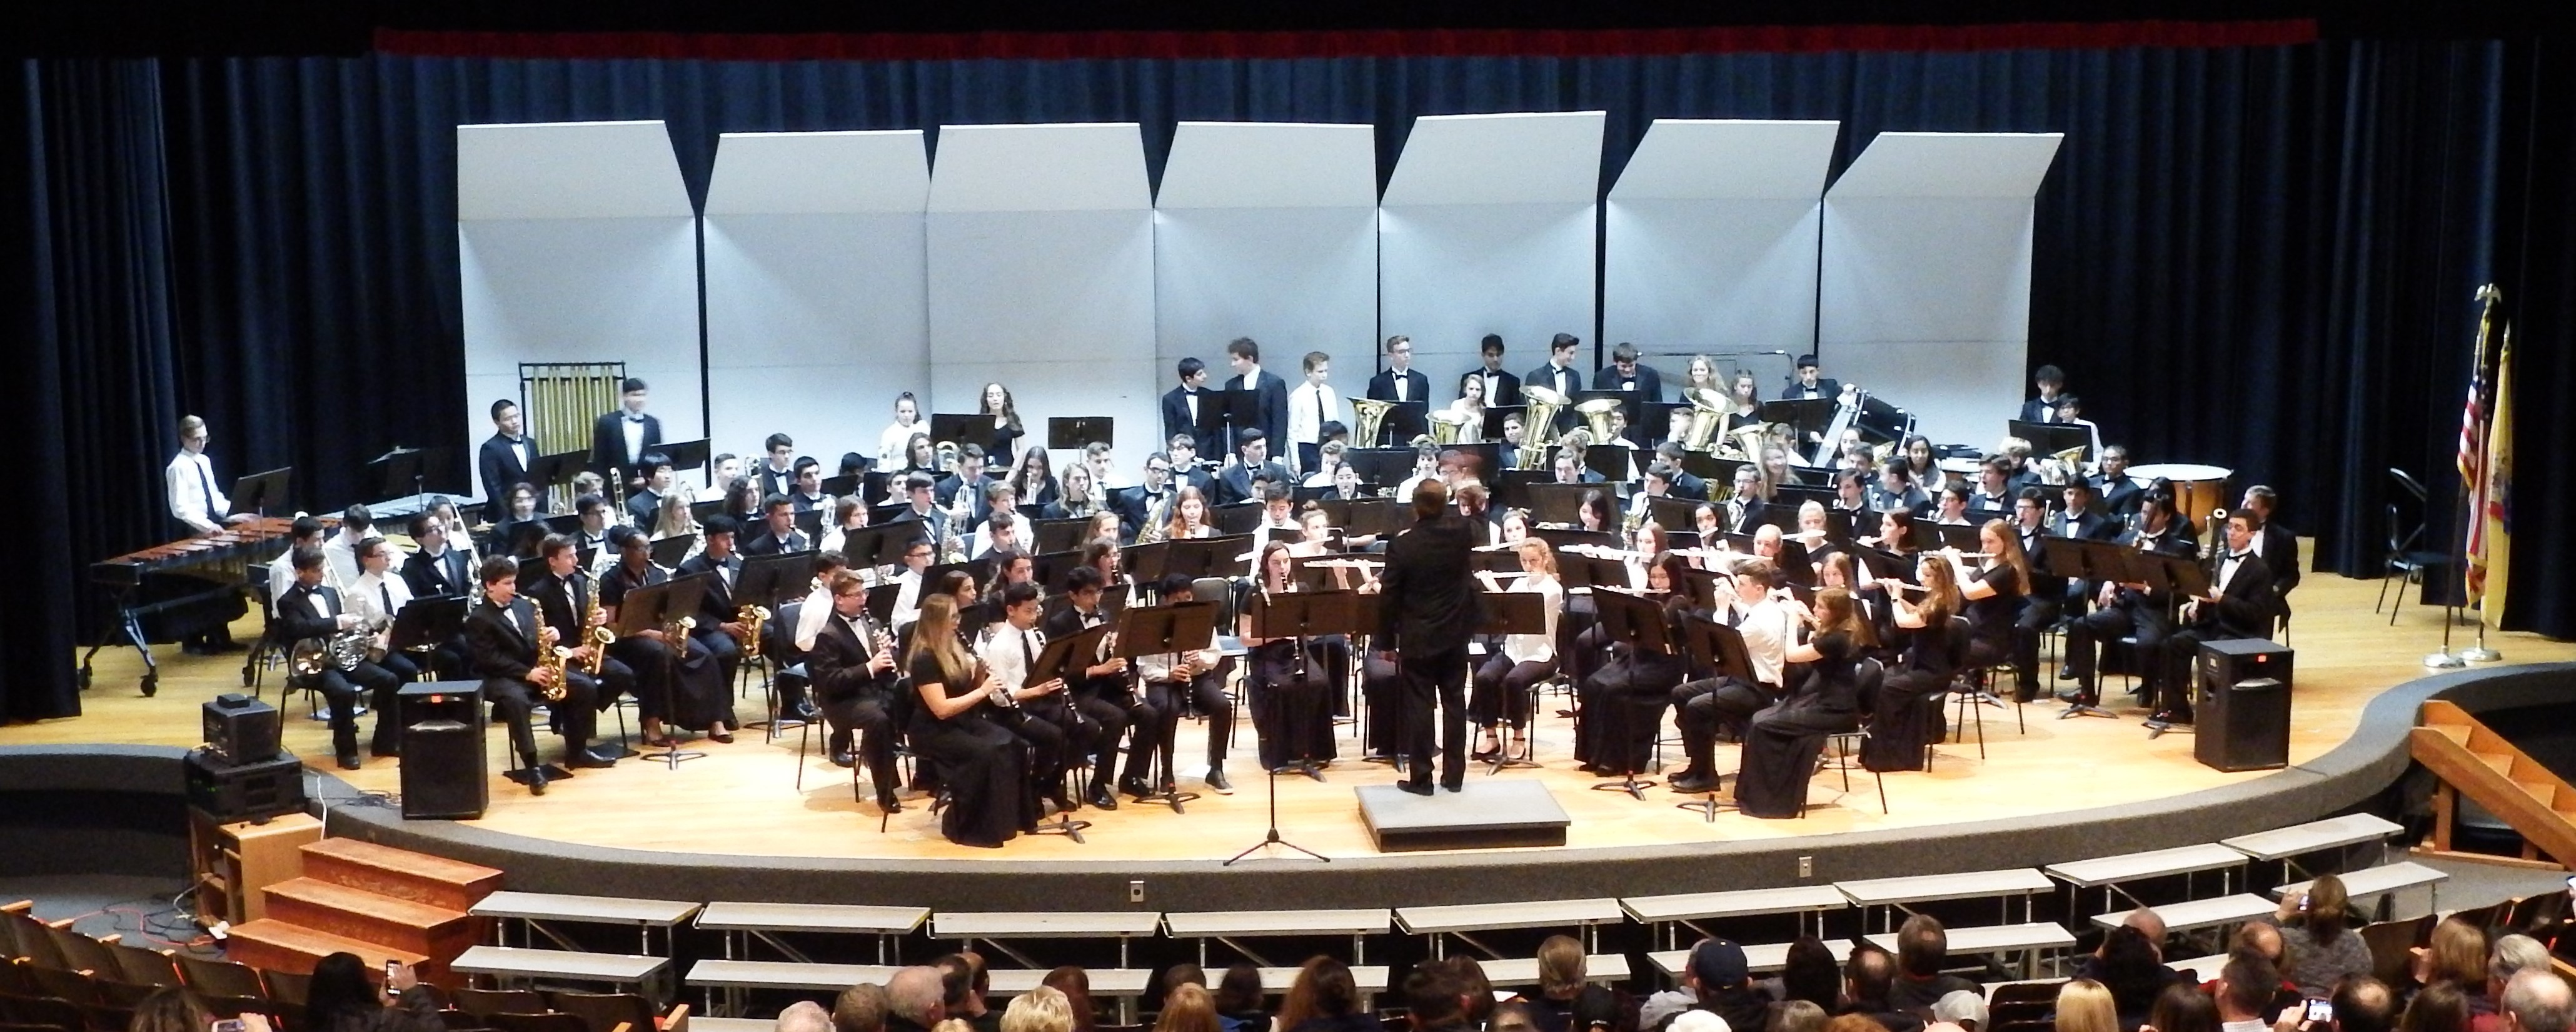 More than 130 musicians filled the stage as 8th Grade Band Students joined the High School musicians for a special combined performance!